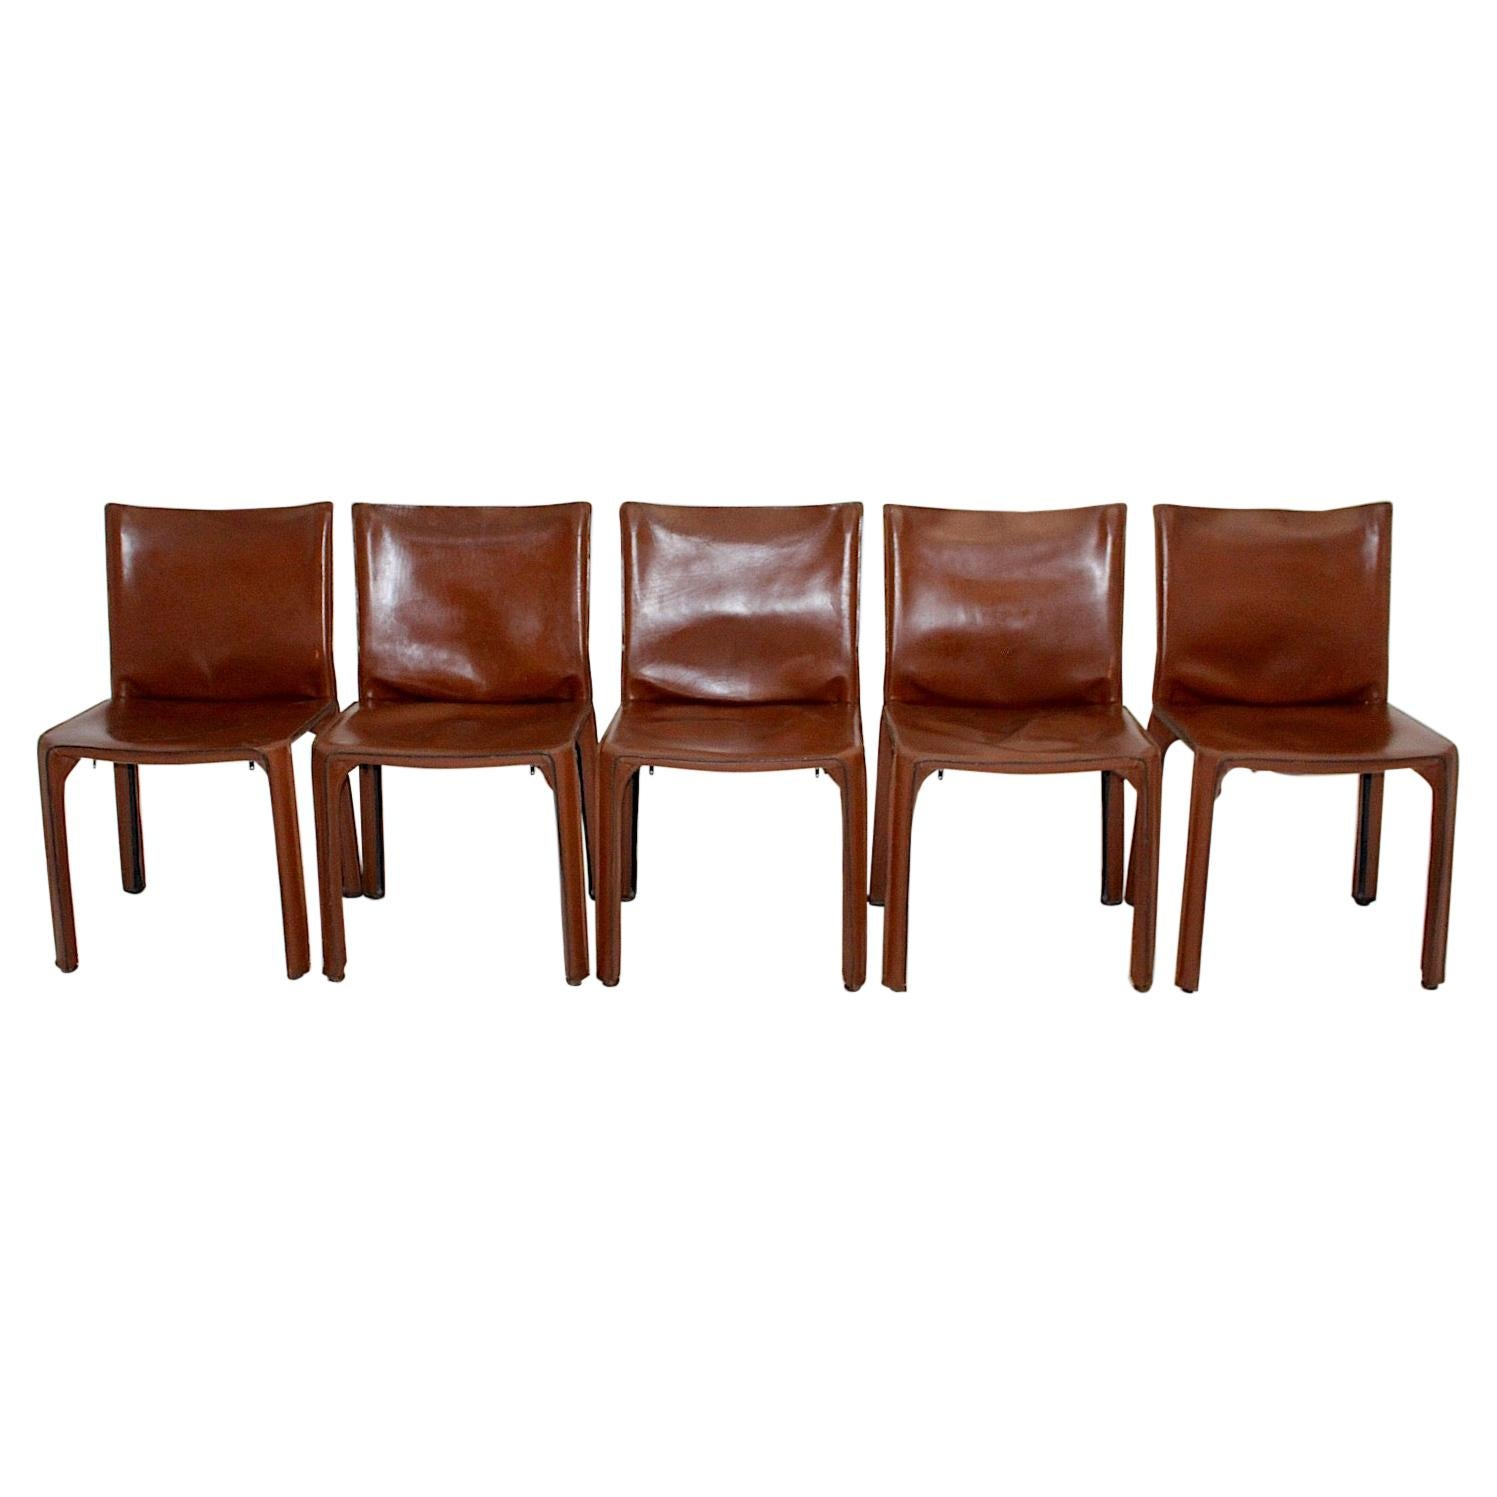 Modern Vintage Five Cognac Brown Leather CAB Dining Chairs Mario Bellini, Italy